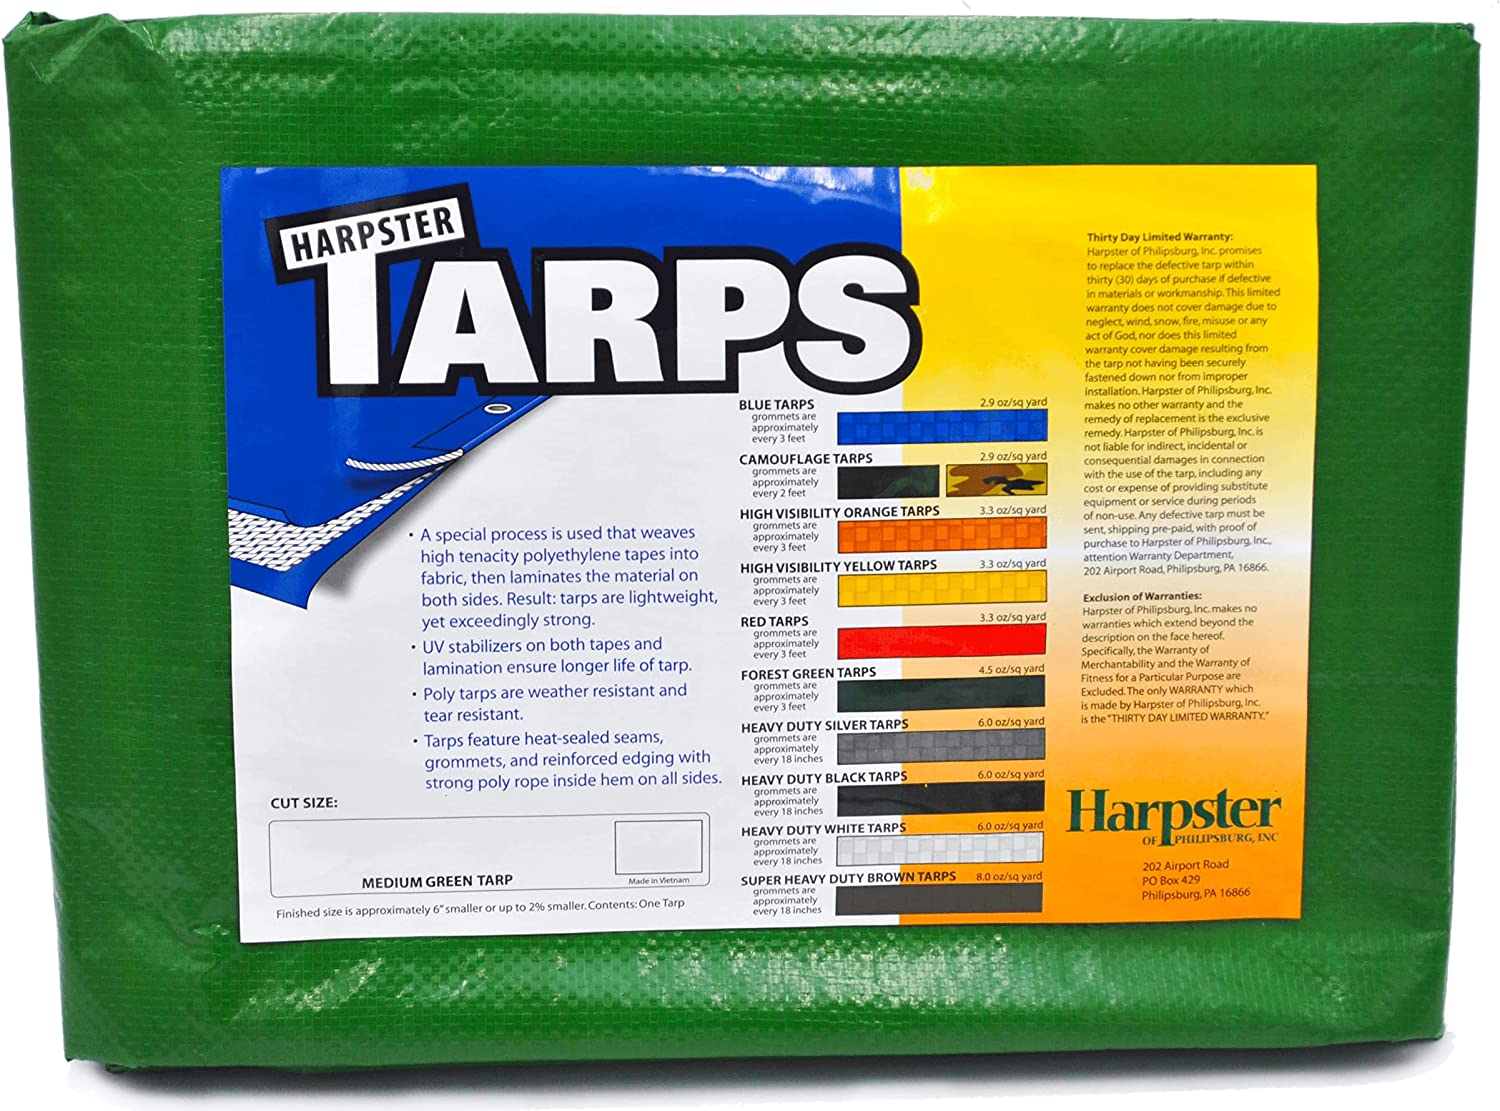 Harpster Tarps 12ft. x 20ft. Green Waterproof Medium All-Purpose Directly managed store Discount mail order